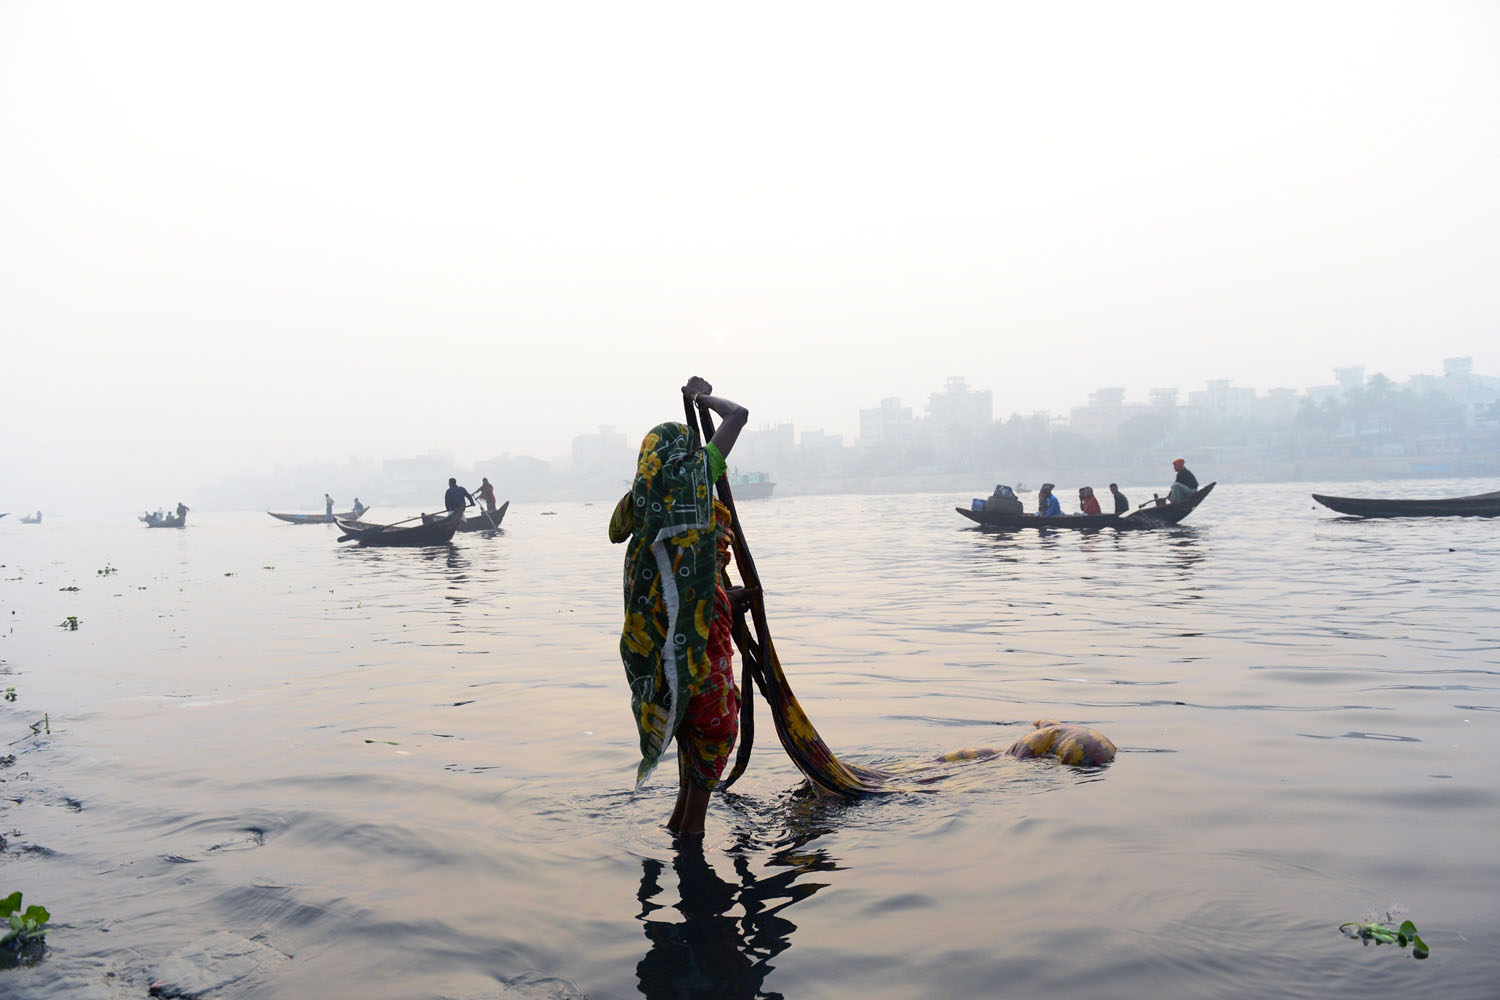 Jan. 4, 2014. A Bangladeshi resident of a depressed neighborhood washes clothing in the waters of the Buriganga river in Dhaka.